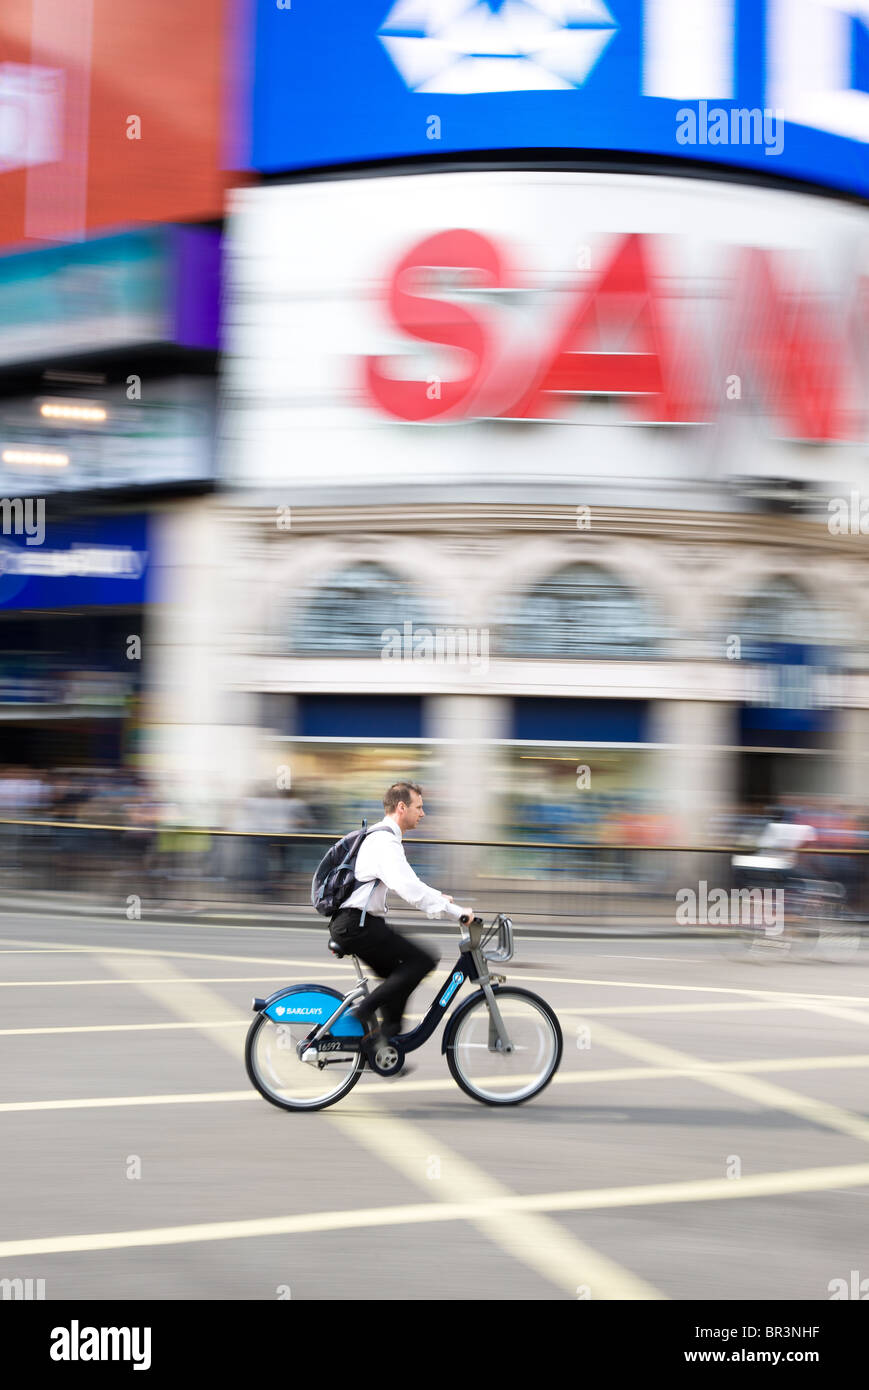 Barclays Cycle Hire bike travelling through Piccadilly Circus, London - Stock Image